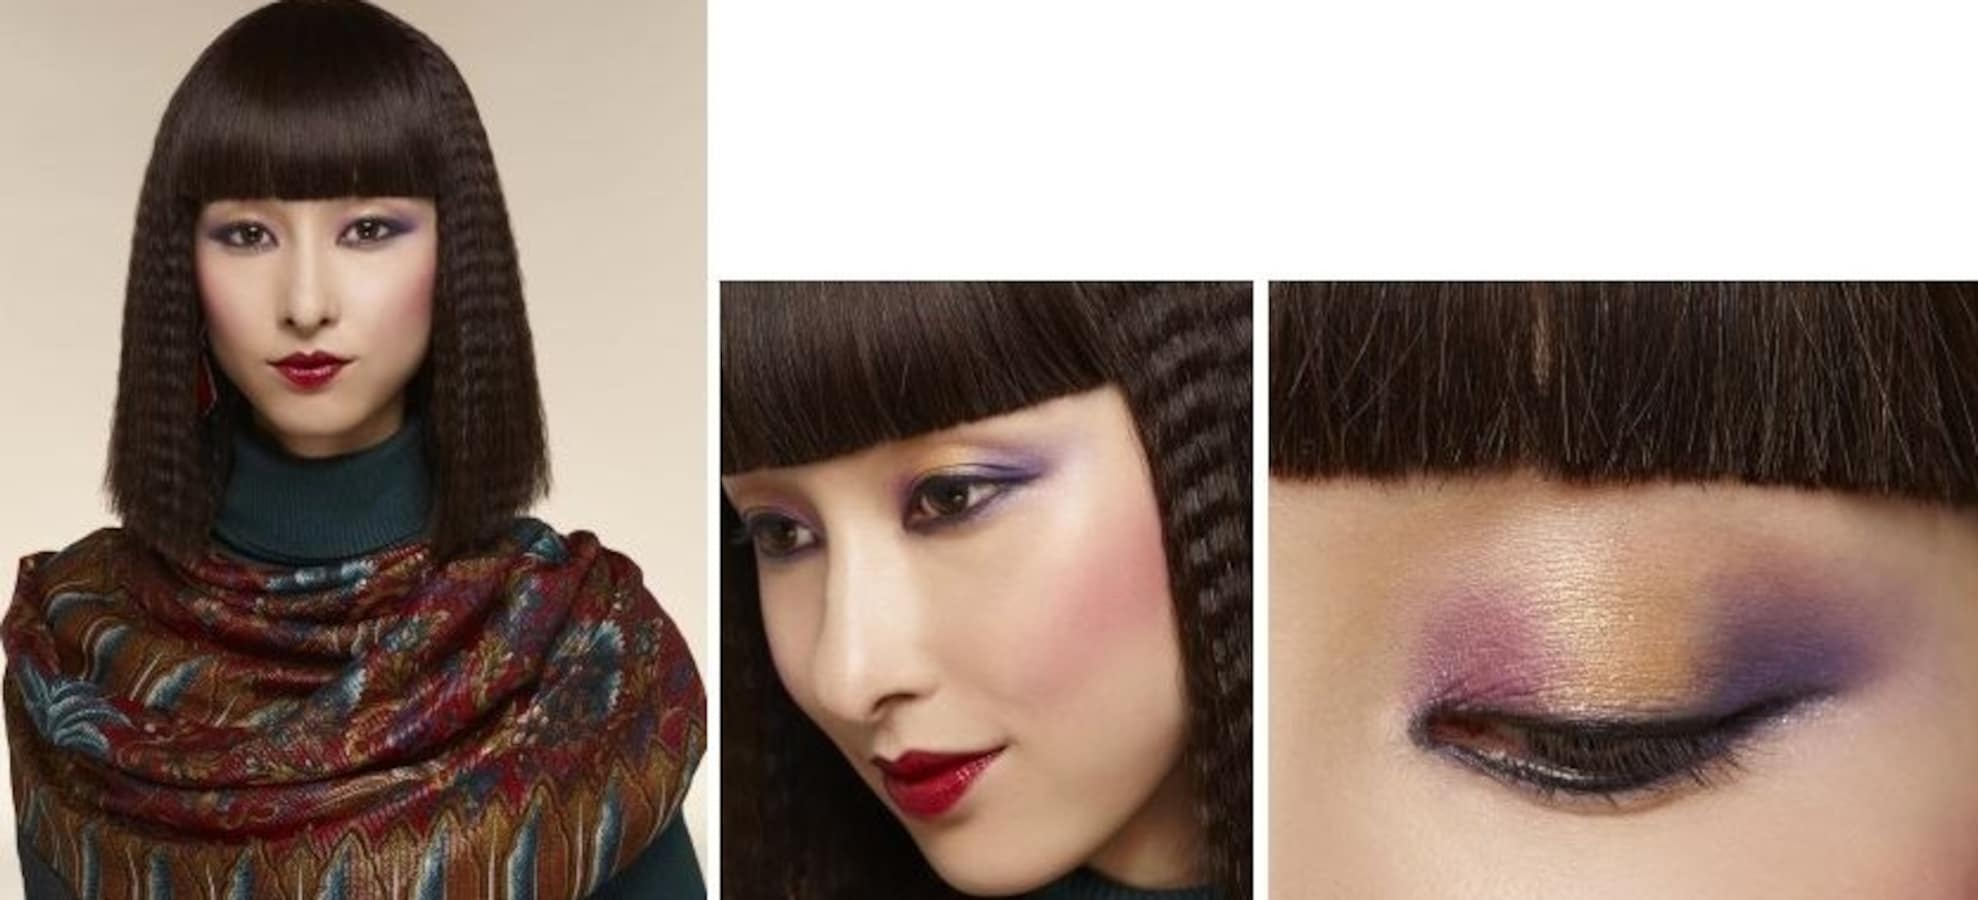 100 Years Of Japanese Makeup Styles All About Japan